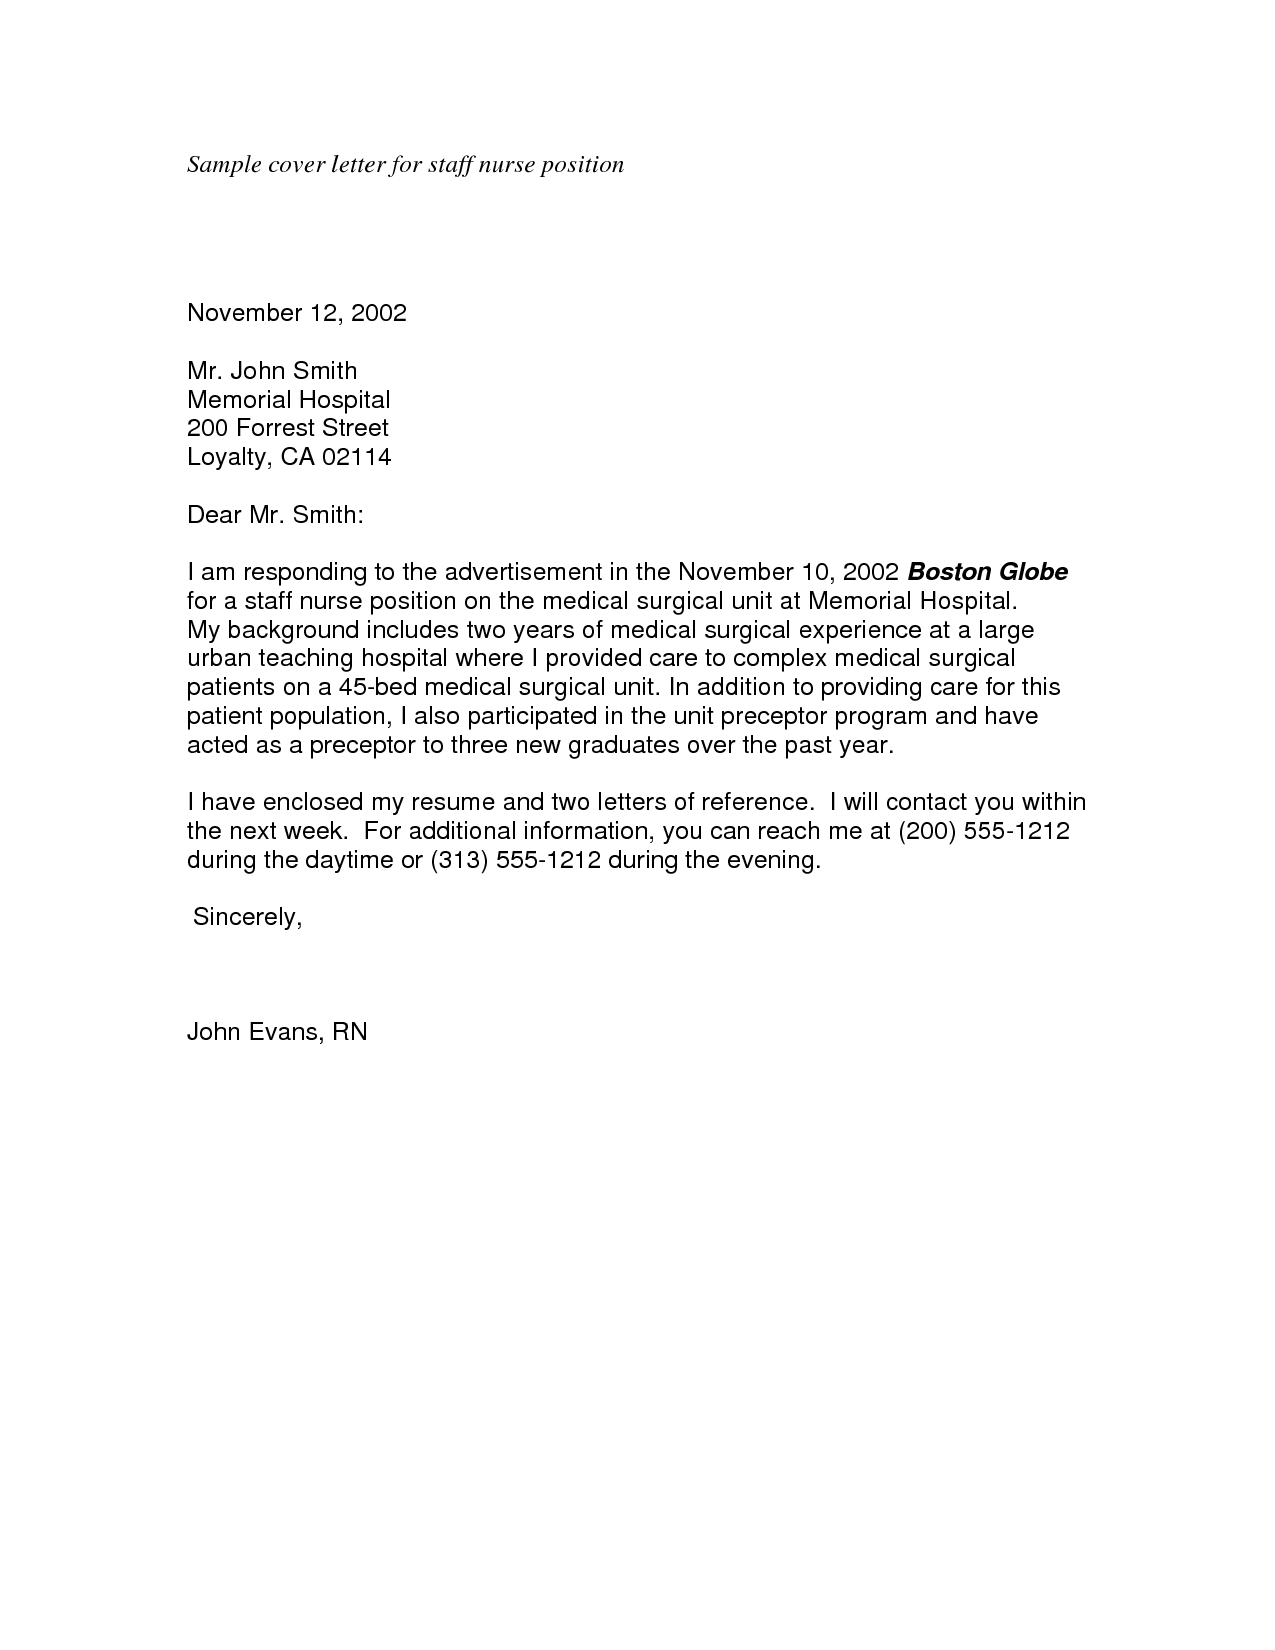 sample professional cover letters